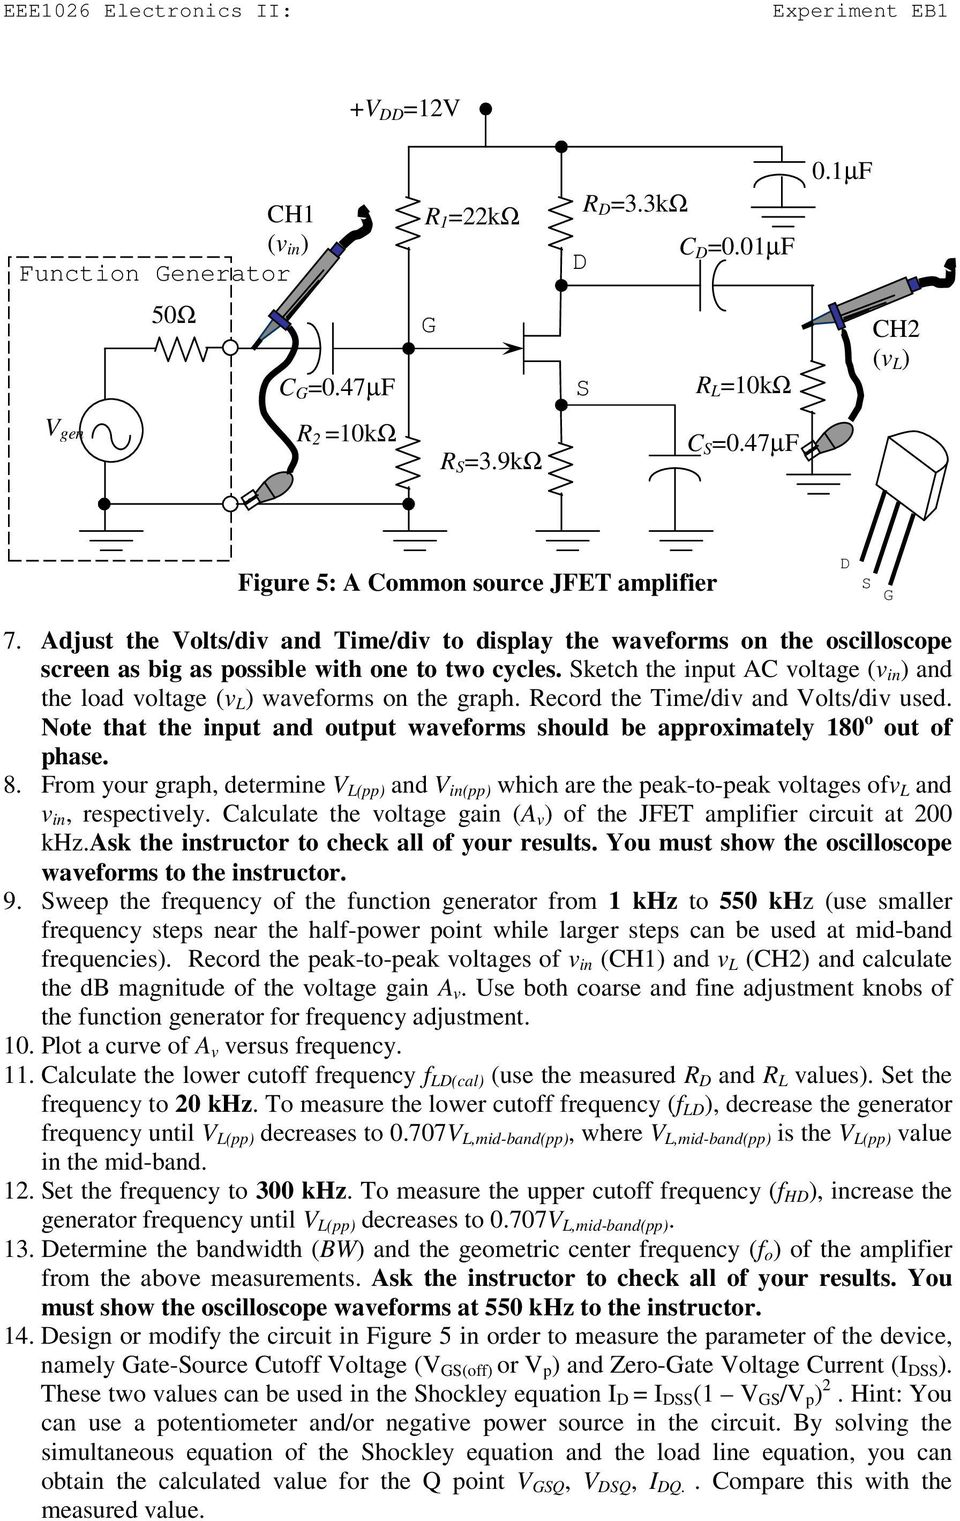 Example Ac Transistor Circuit Analysis Of The Mid Frequency Response Experiment Eb1 Fet Amplifier Pdf Sketch Put Voltage V And Load Waveforms